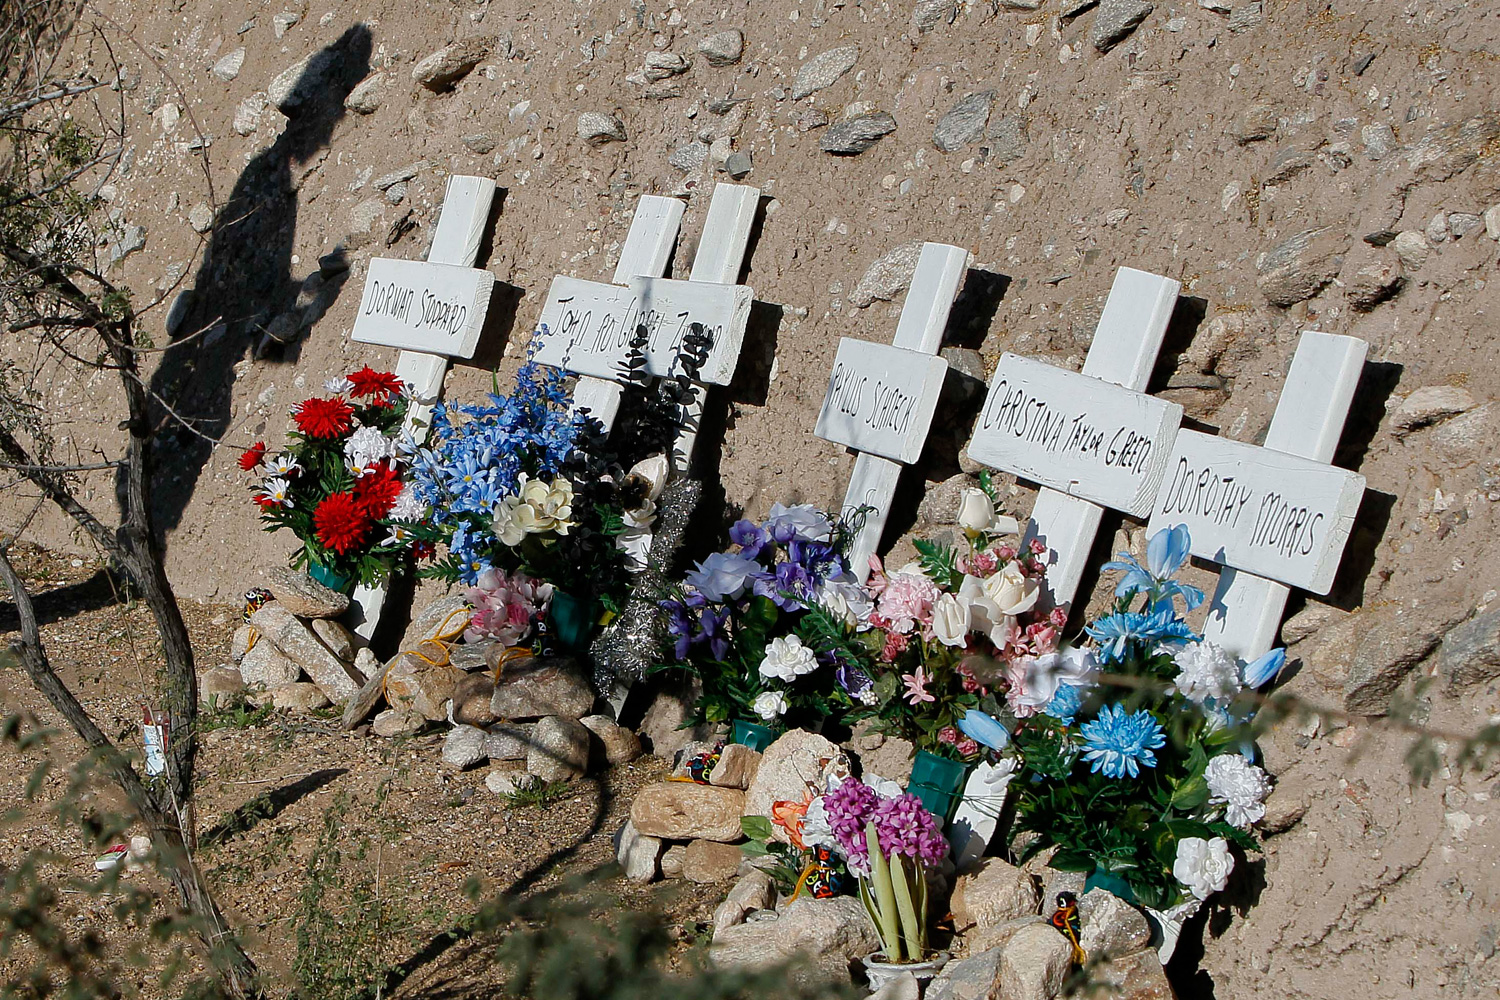 January 8, 2012. Six memorial markers with the names of those who died in a shooting spree are displayed in Tucson, Ariz., across the street from the Safeway grocery store where U.S. Rep. Gabrielle Giffords, D-Ariz., was shot one year ago during the shooting spree that left 6 dead and 13 wounded.